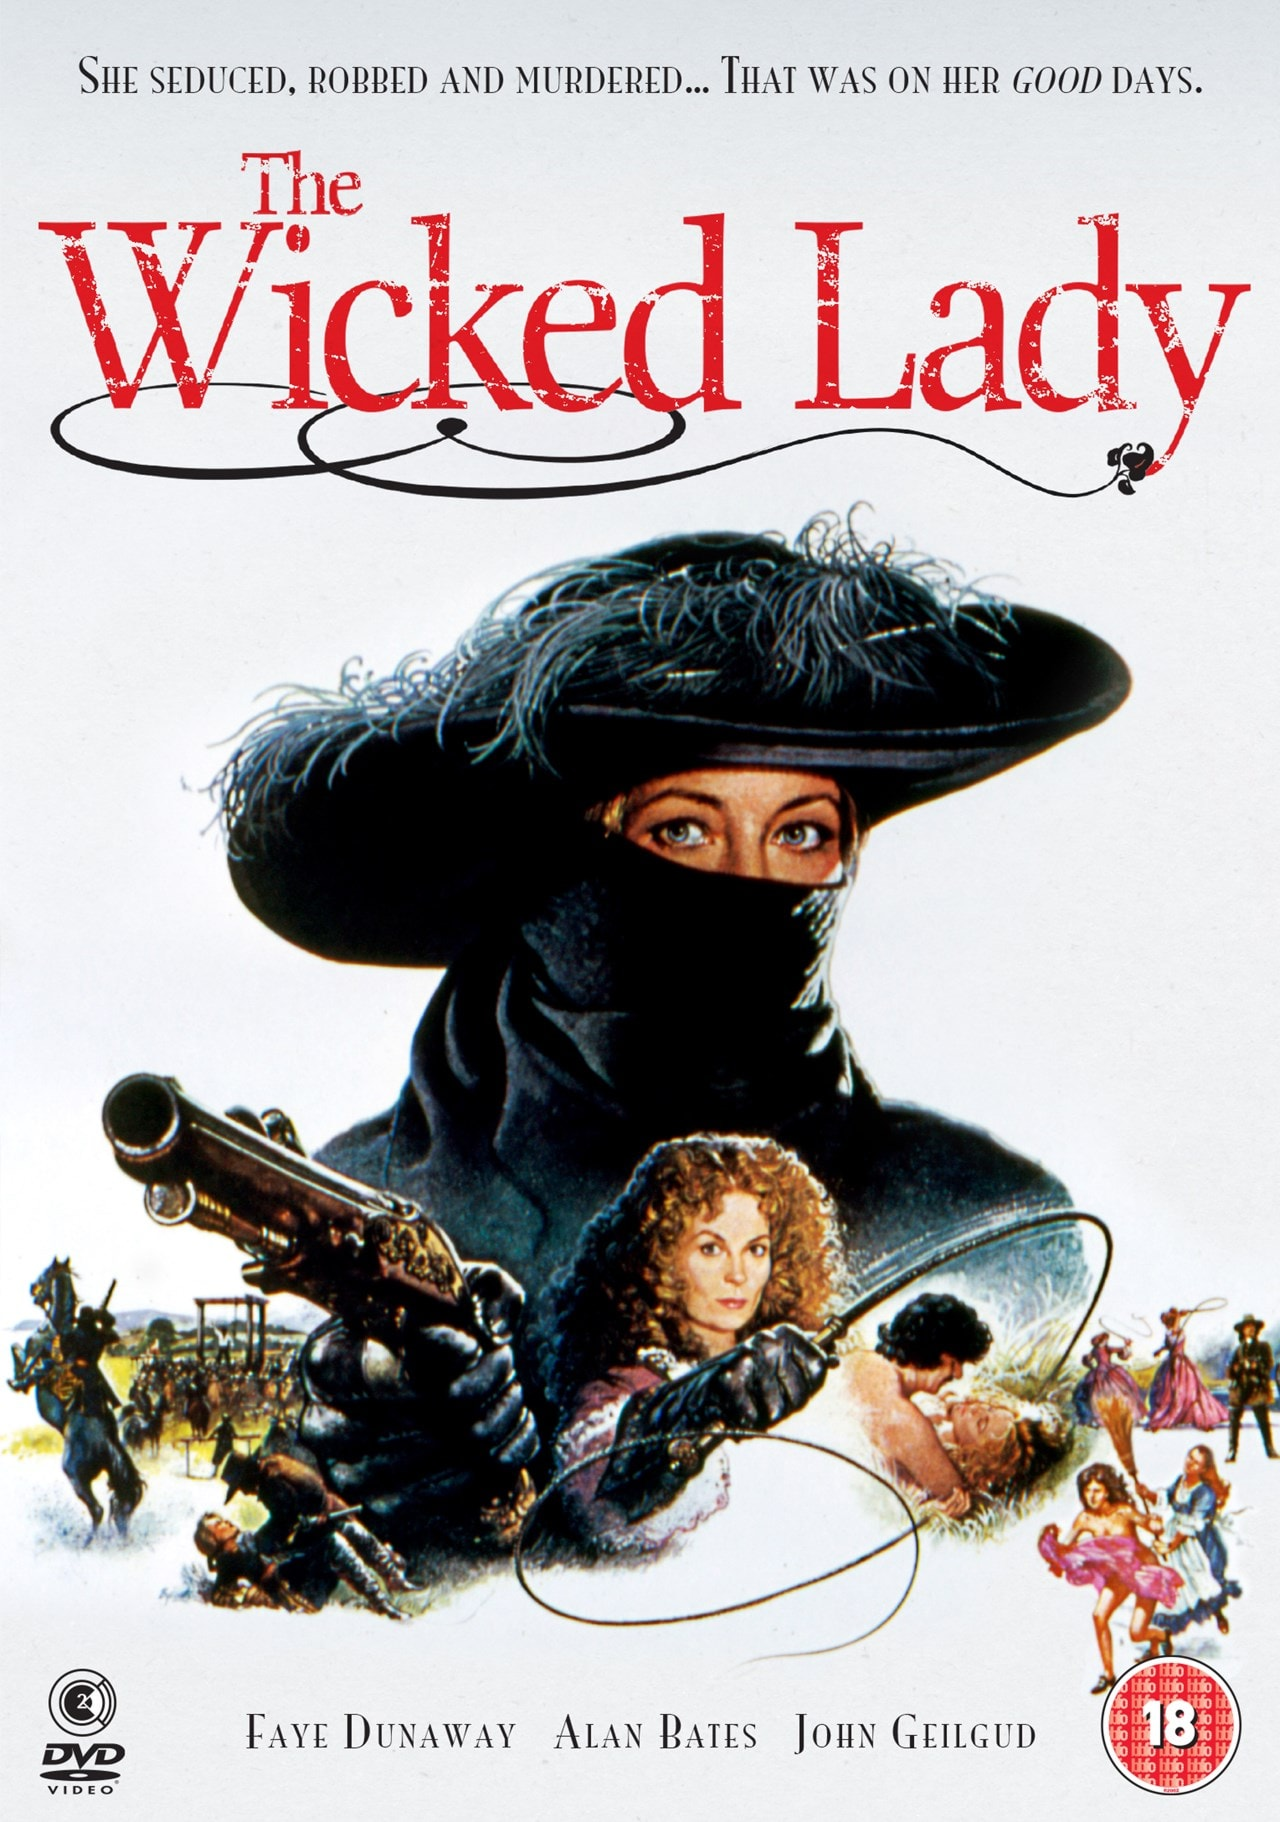 The Wicked Lady - 1